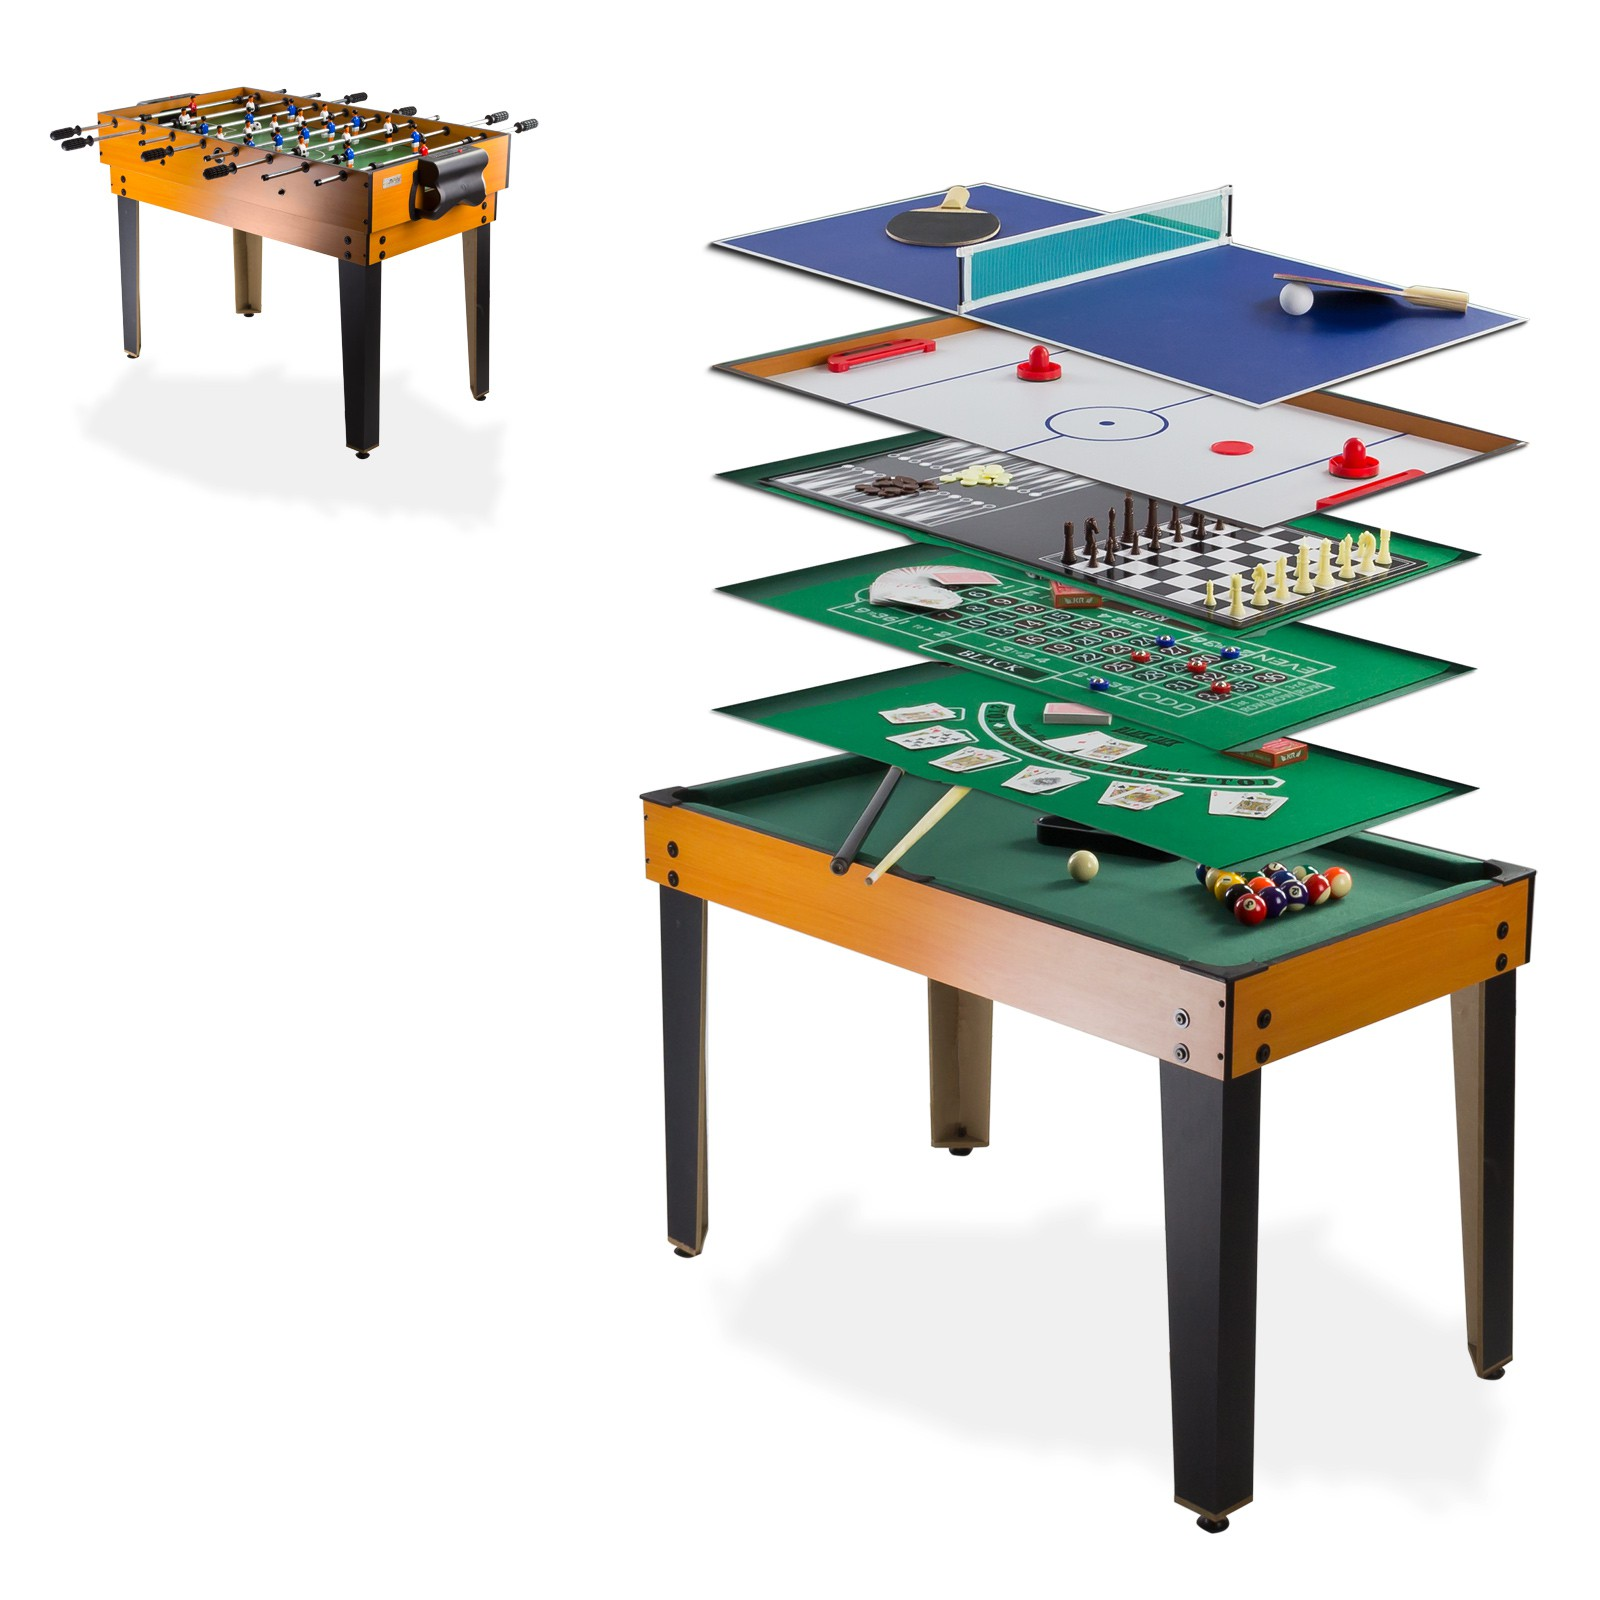 Multi spieltisch 13 in 1 kicker billard bowling tischtennis speedhockey - Table de jeux 5 en 1 ...